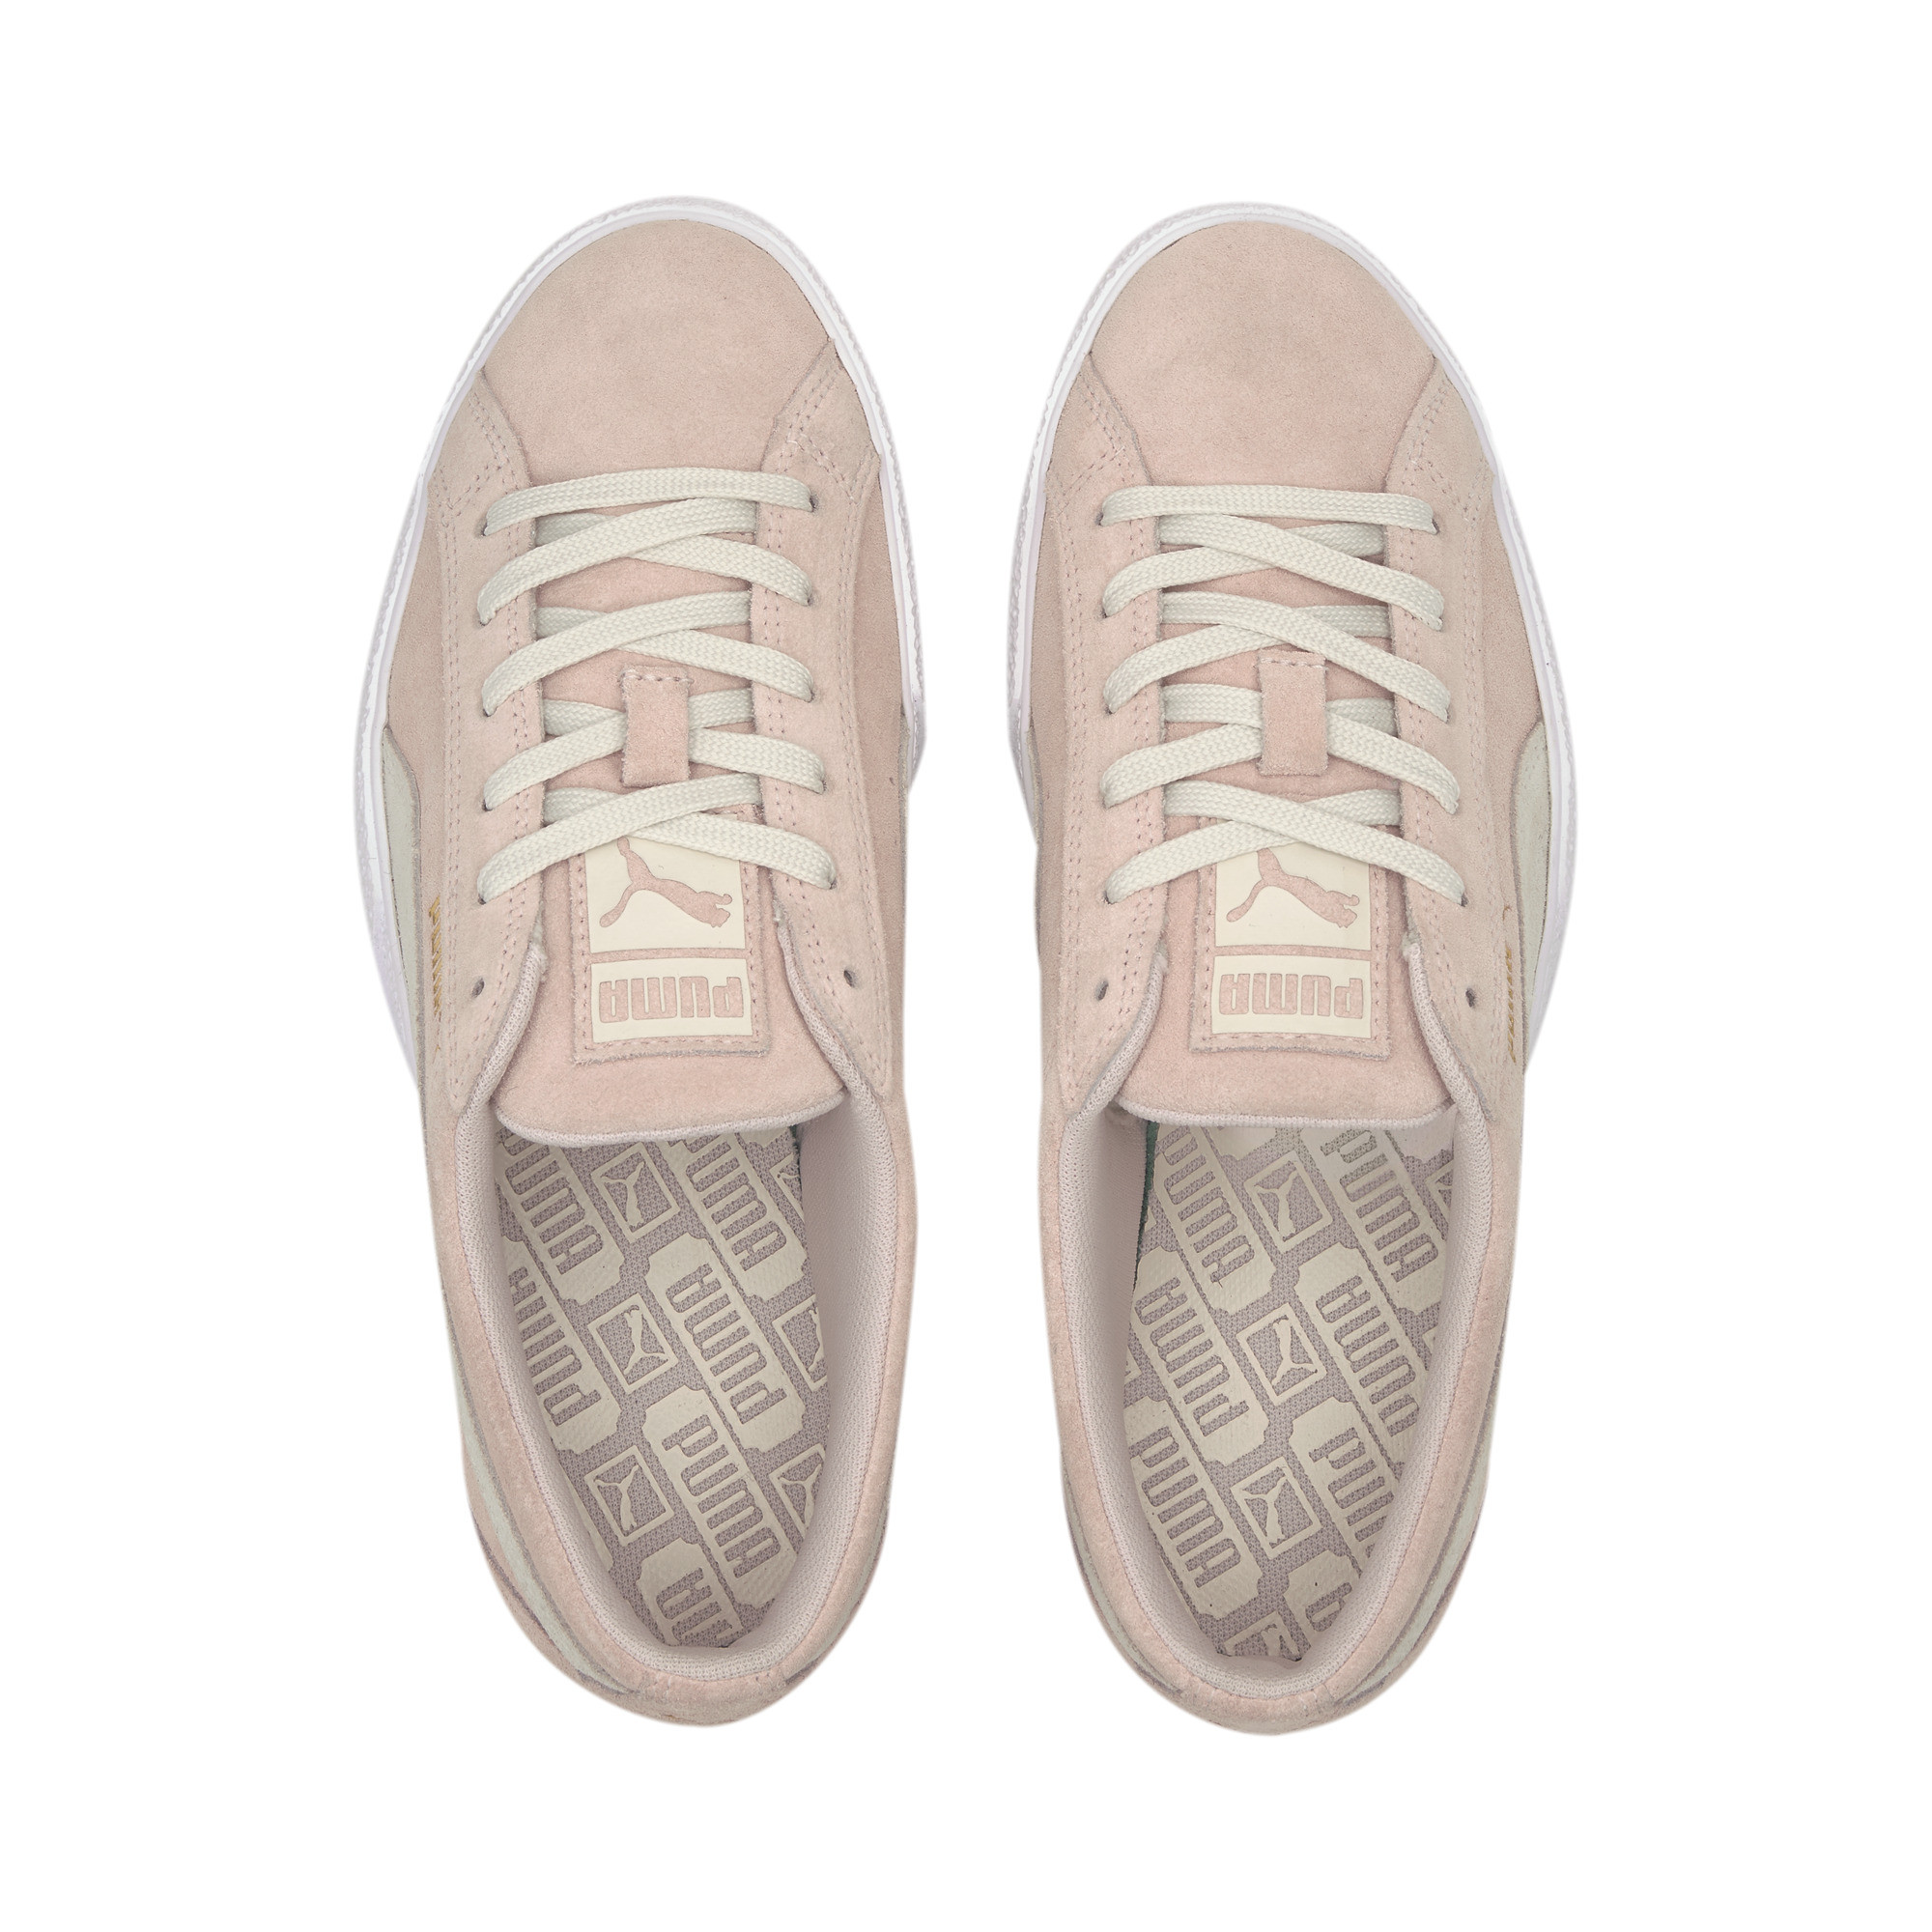 PUMA-Women-039-s-Love-Suede-Sneakers thumbnail 8